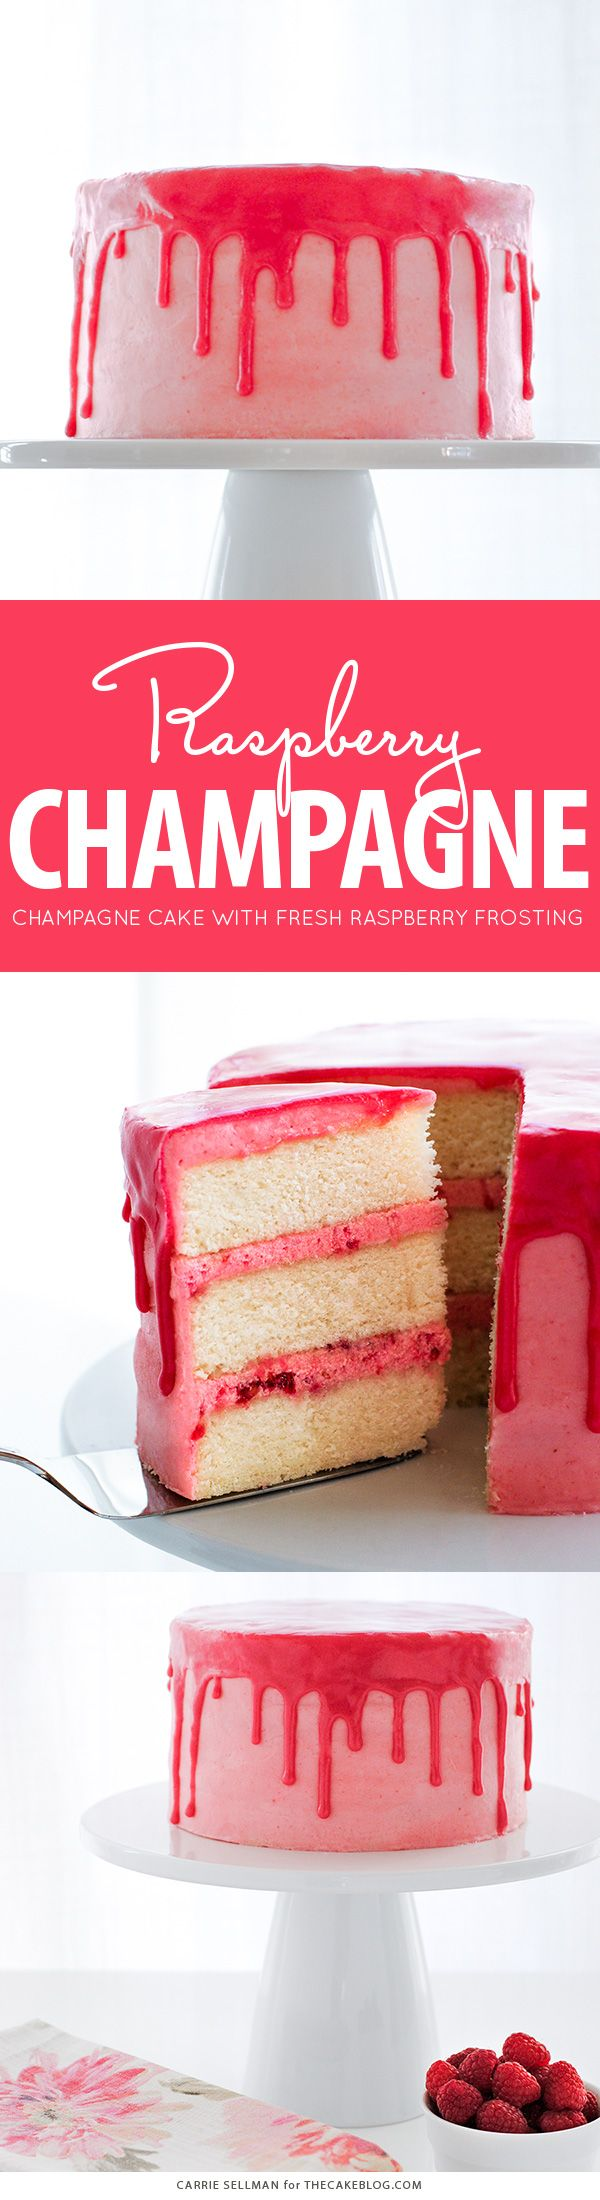 Champagne, berries and cream come together in this delicious Raspberry Champagne Cake.  Served with a drippy raspberry glaze, @realreddiwip and fresh raspberries.  By Carrie Sellman for TheCakeBlog.com. #ad